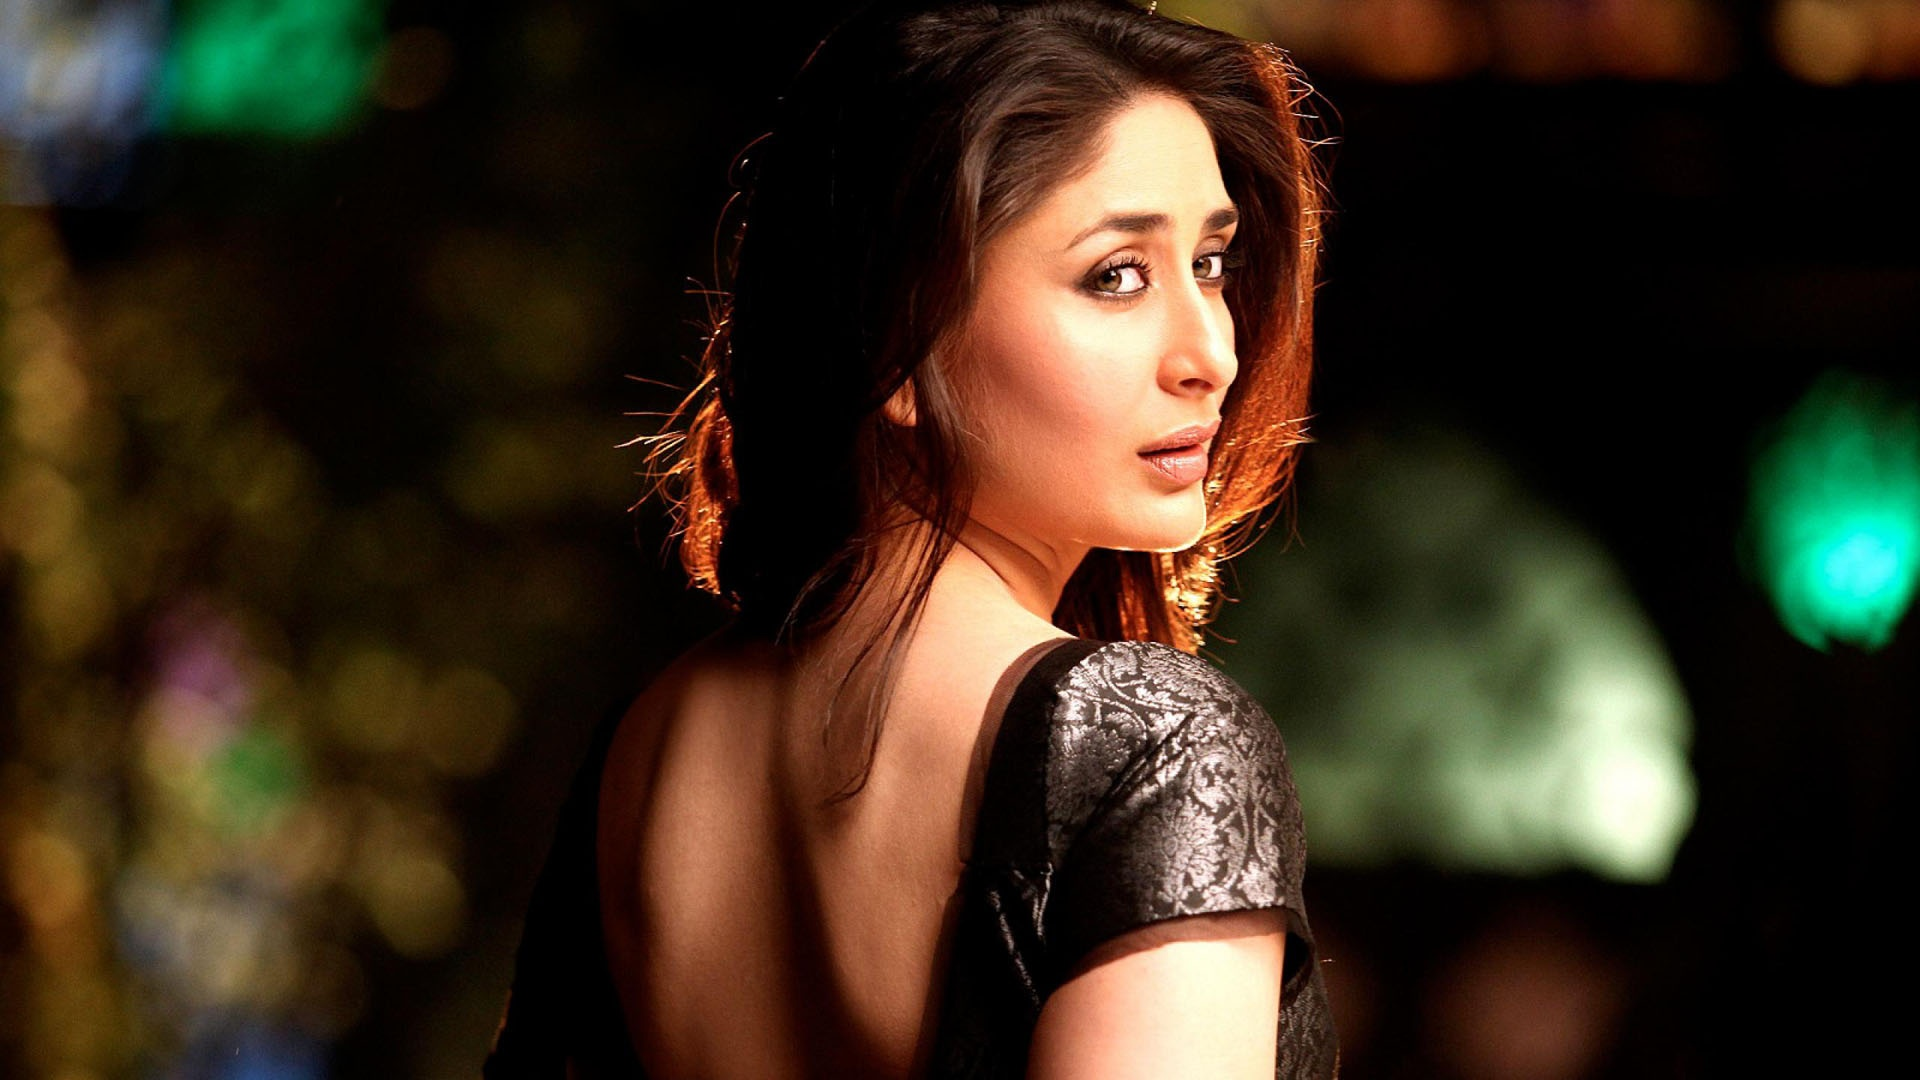 Bollywood Actress Hqfx Wallpapers For Free